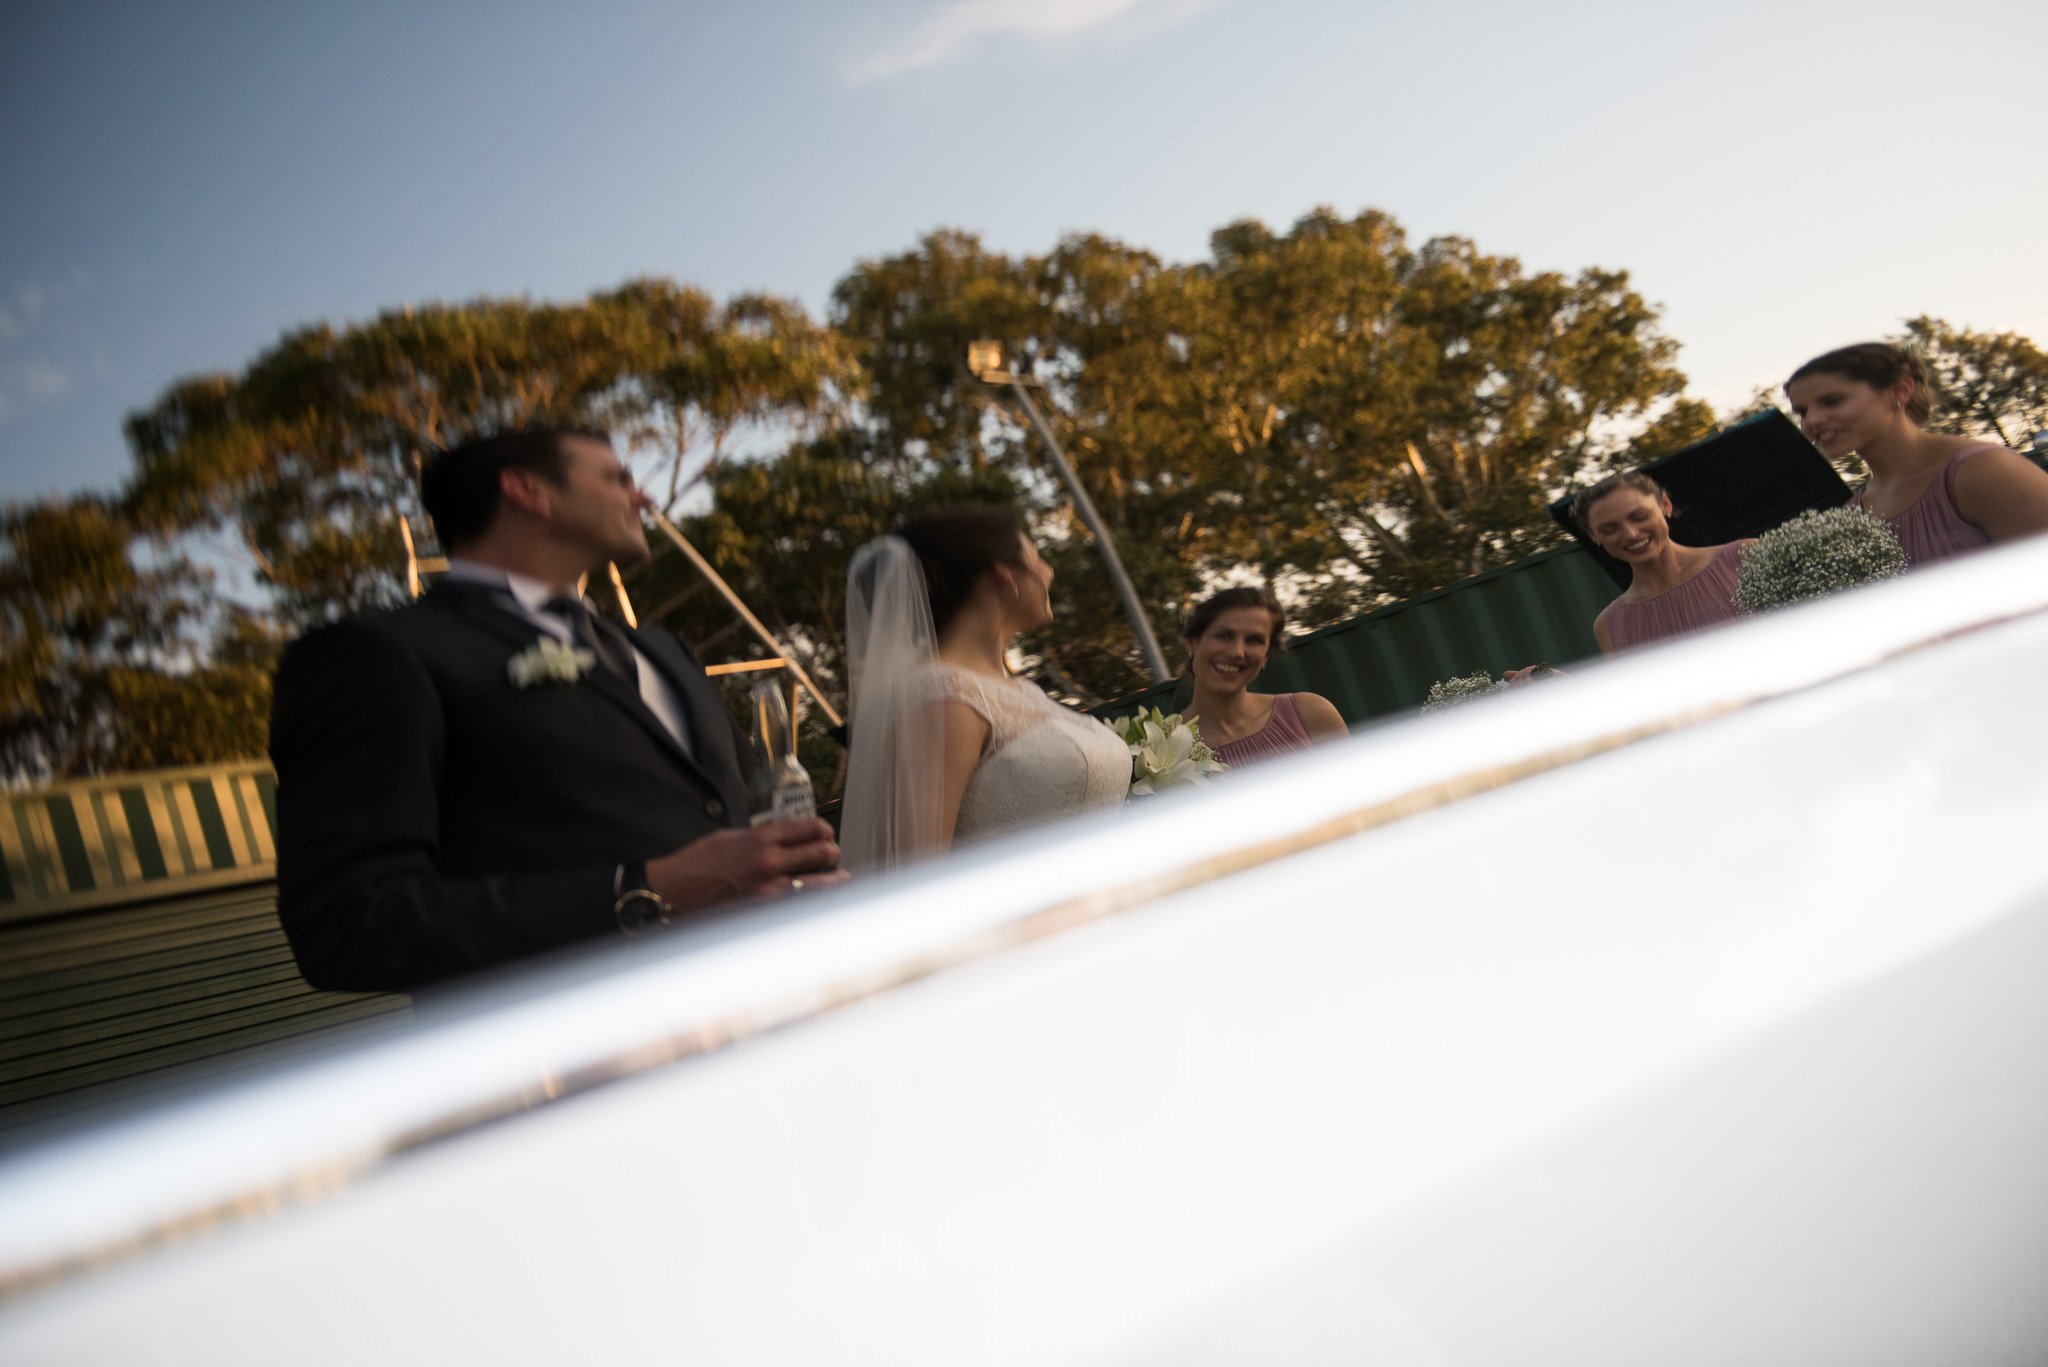 bride and groom reflection in limo